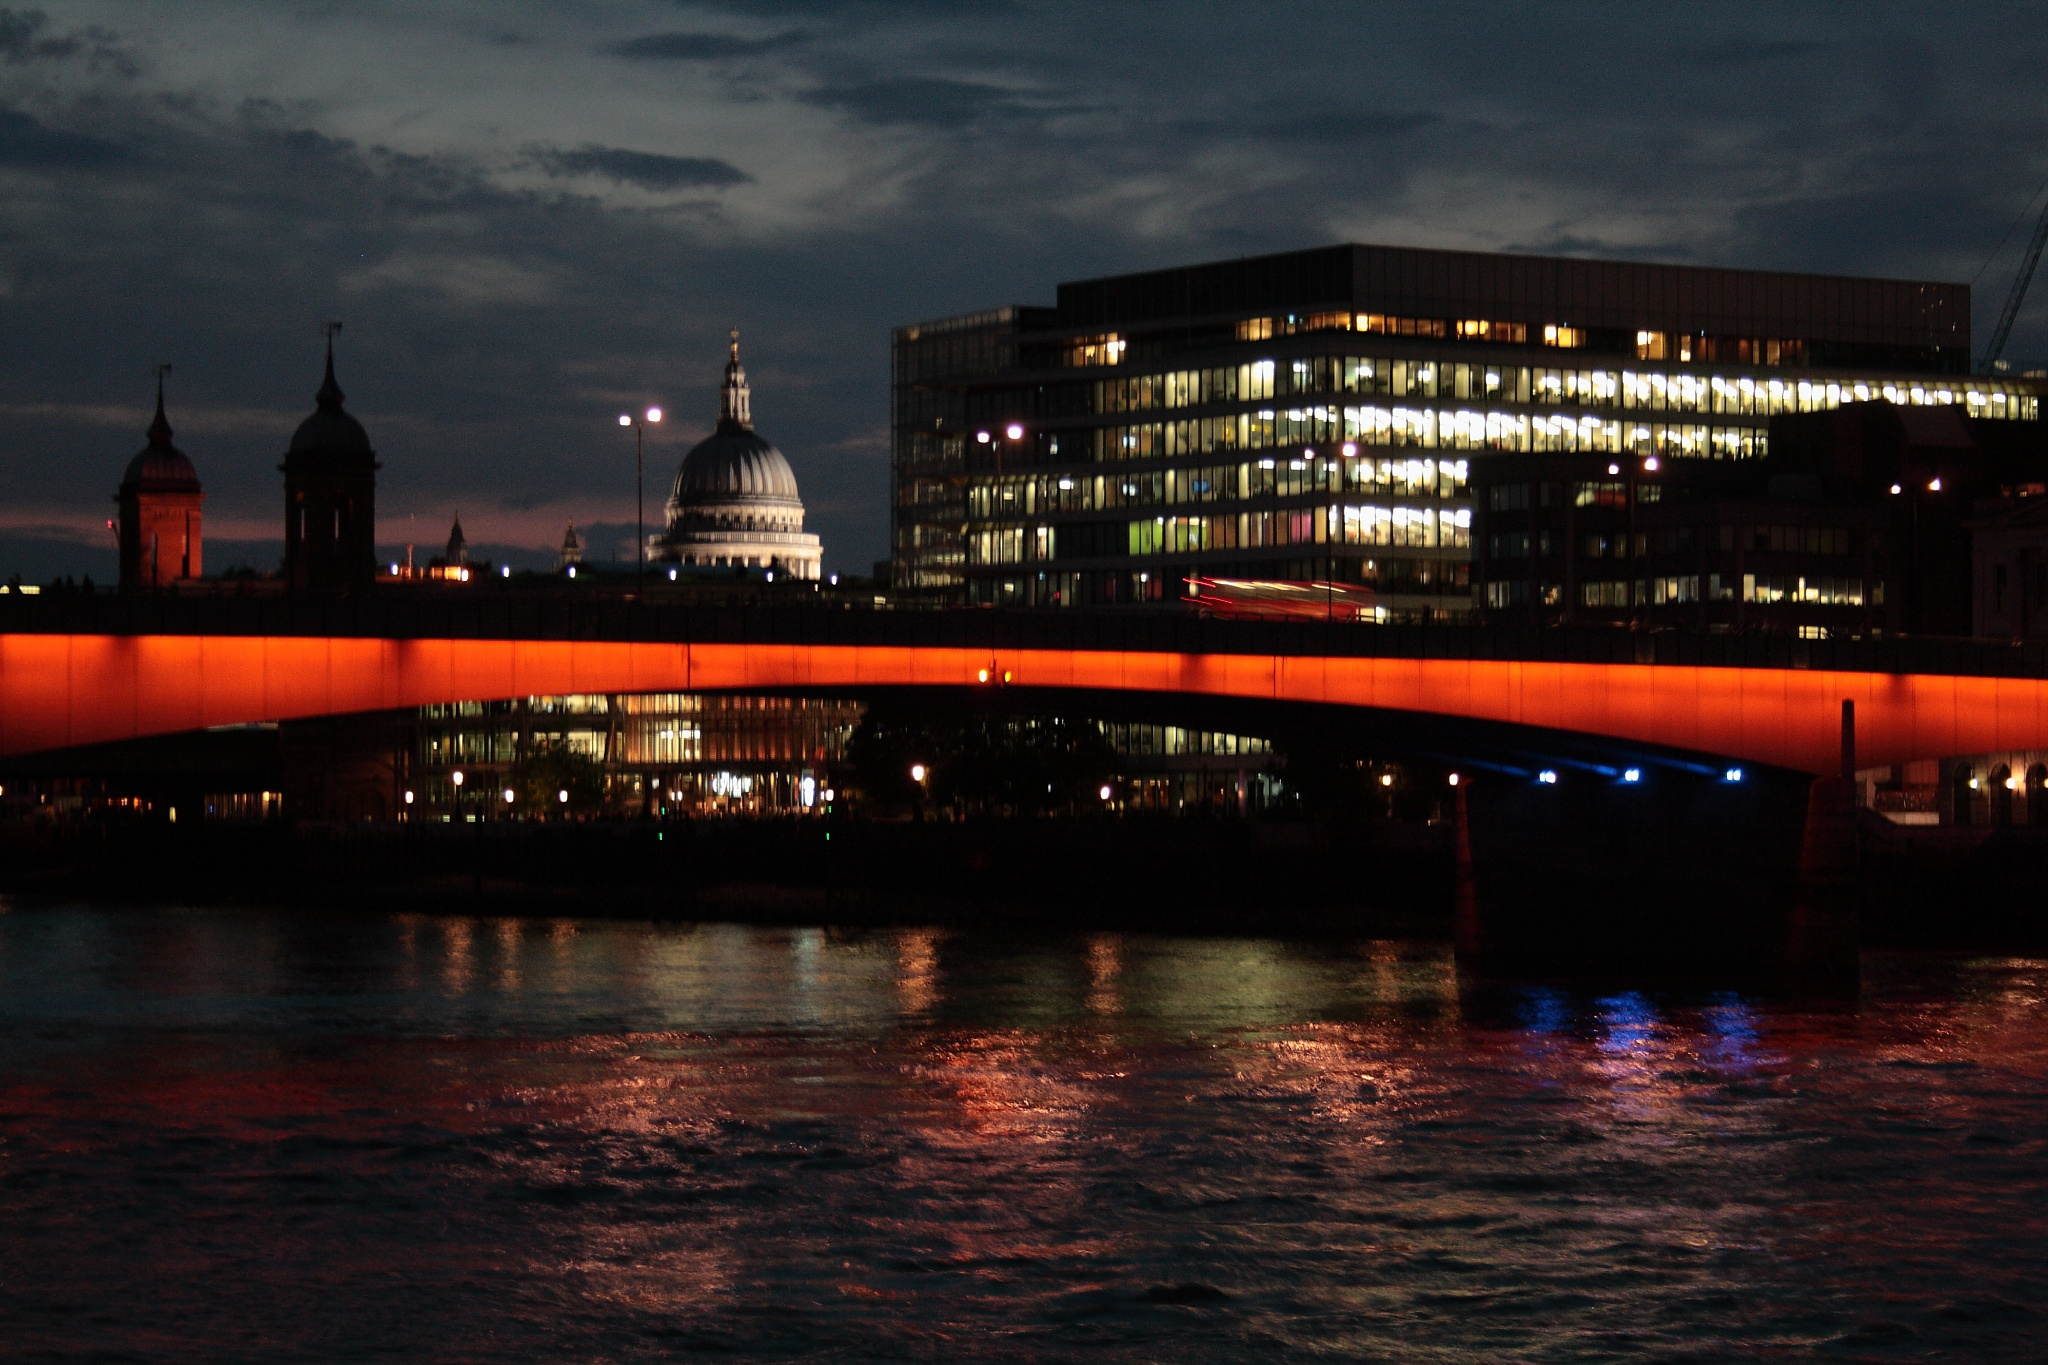 pretty night in London by Maalfredo